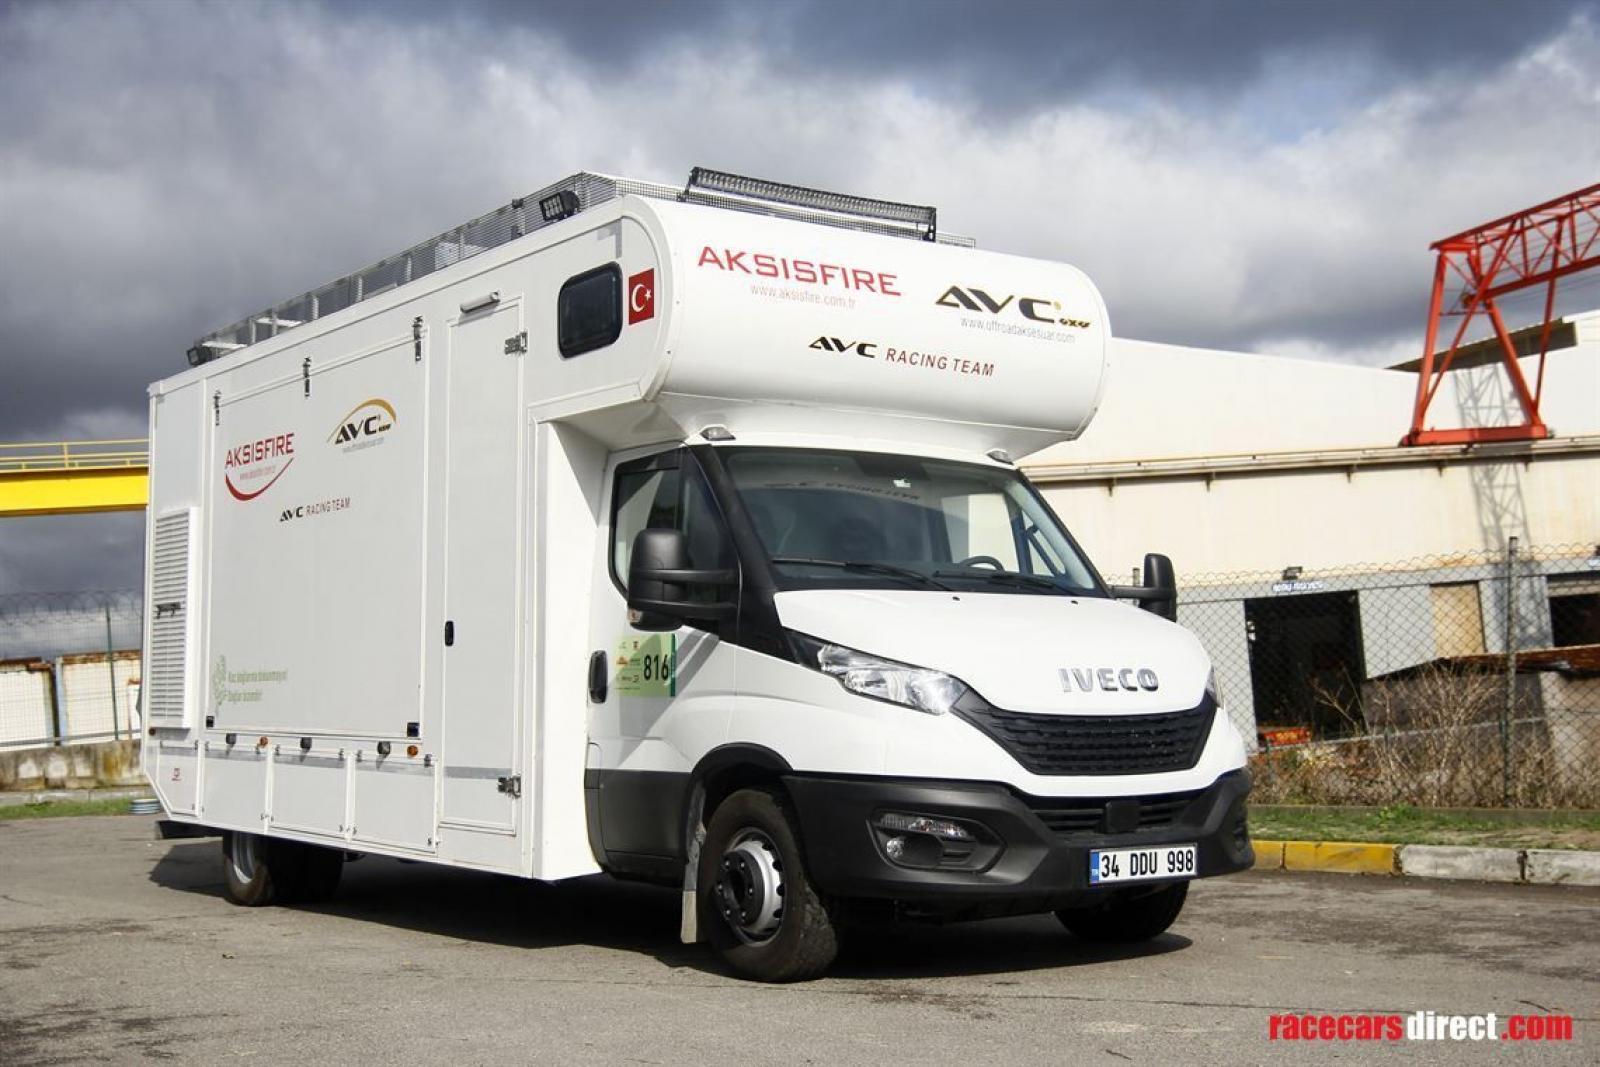 Iveco 7.2T Race Service Truck for Sale (new) - 2